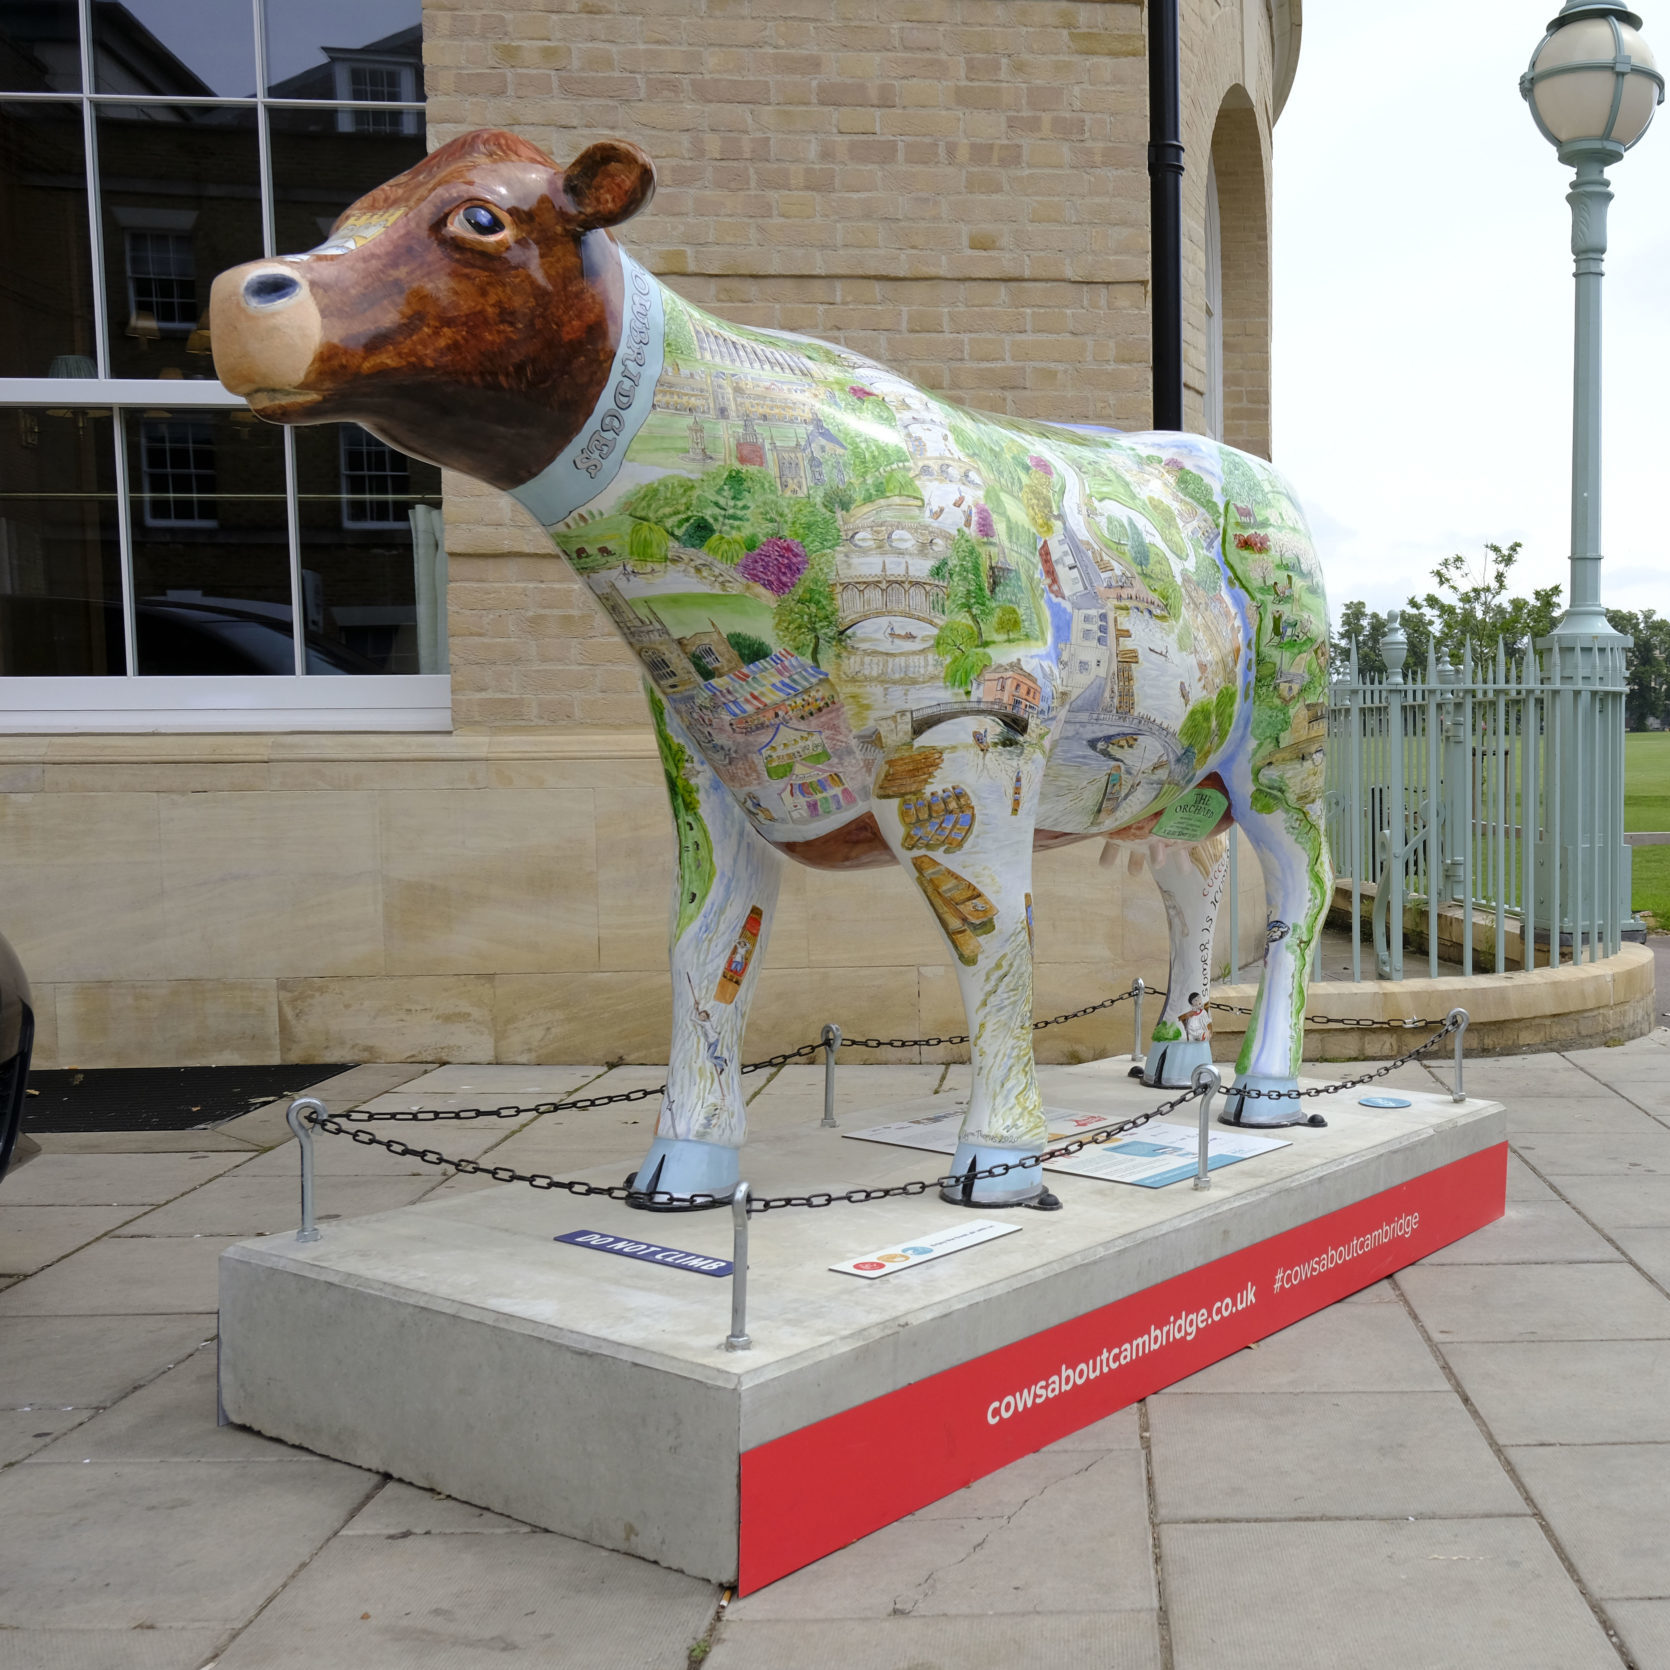 Staycationing in Cambridge: A Bovine Guide to the City